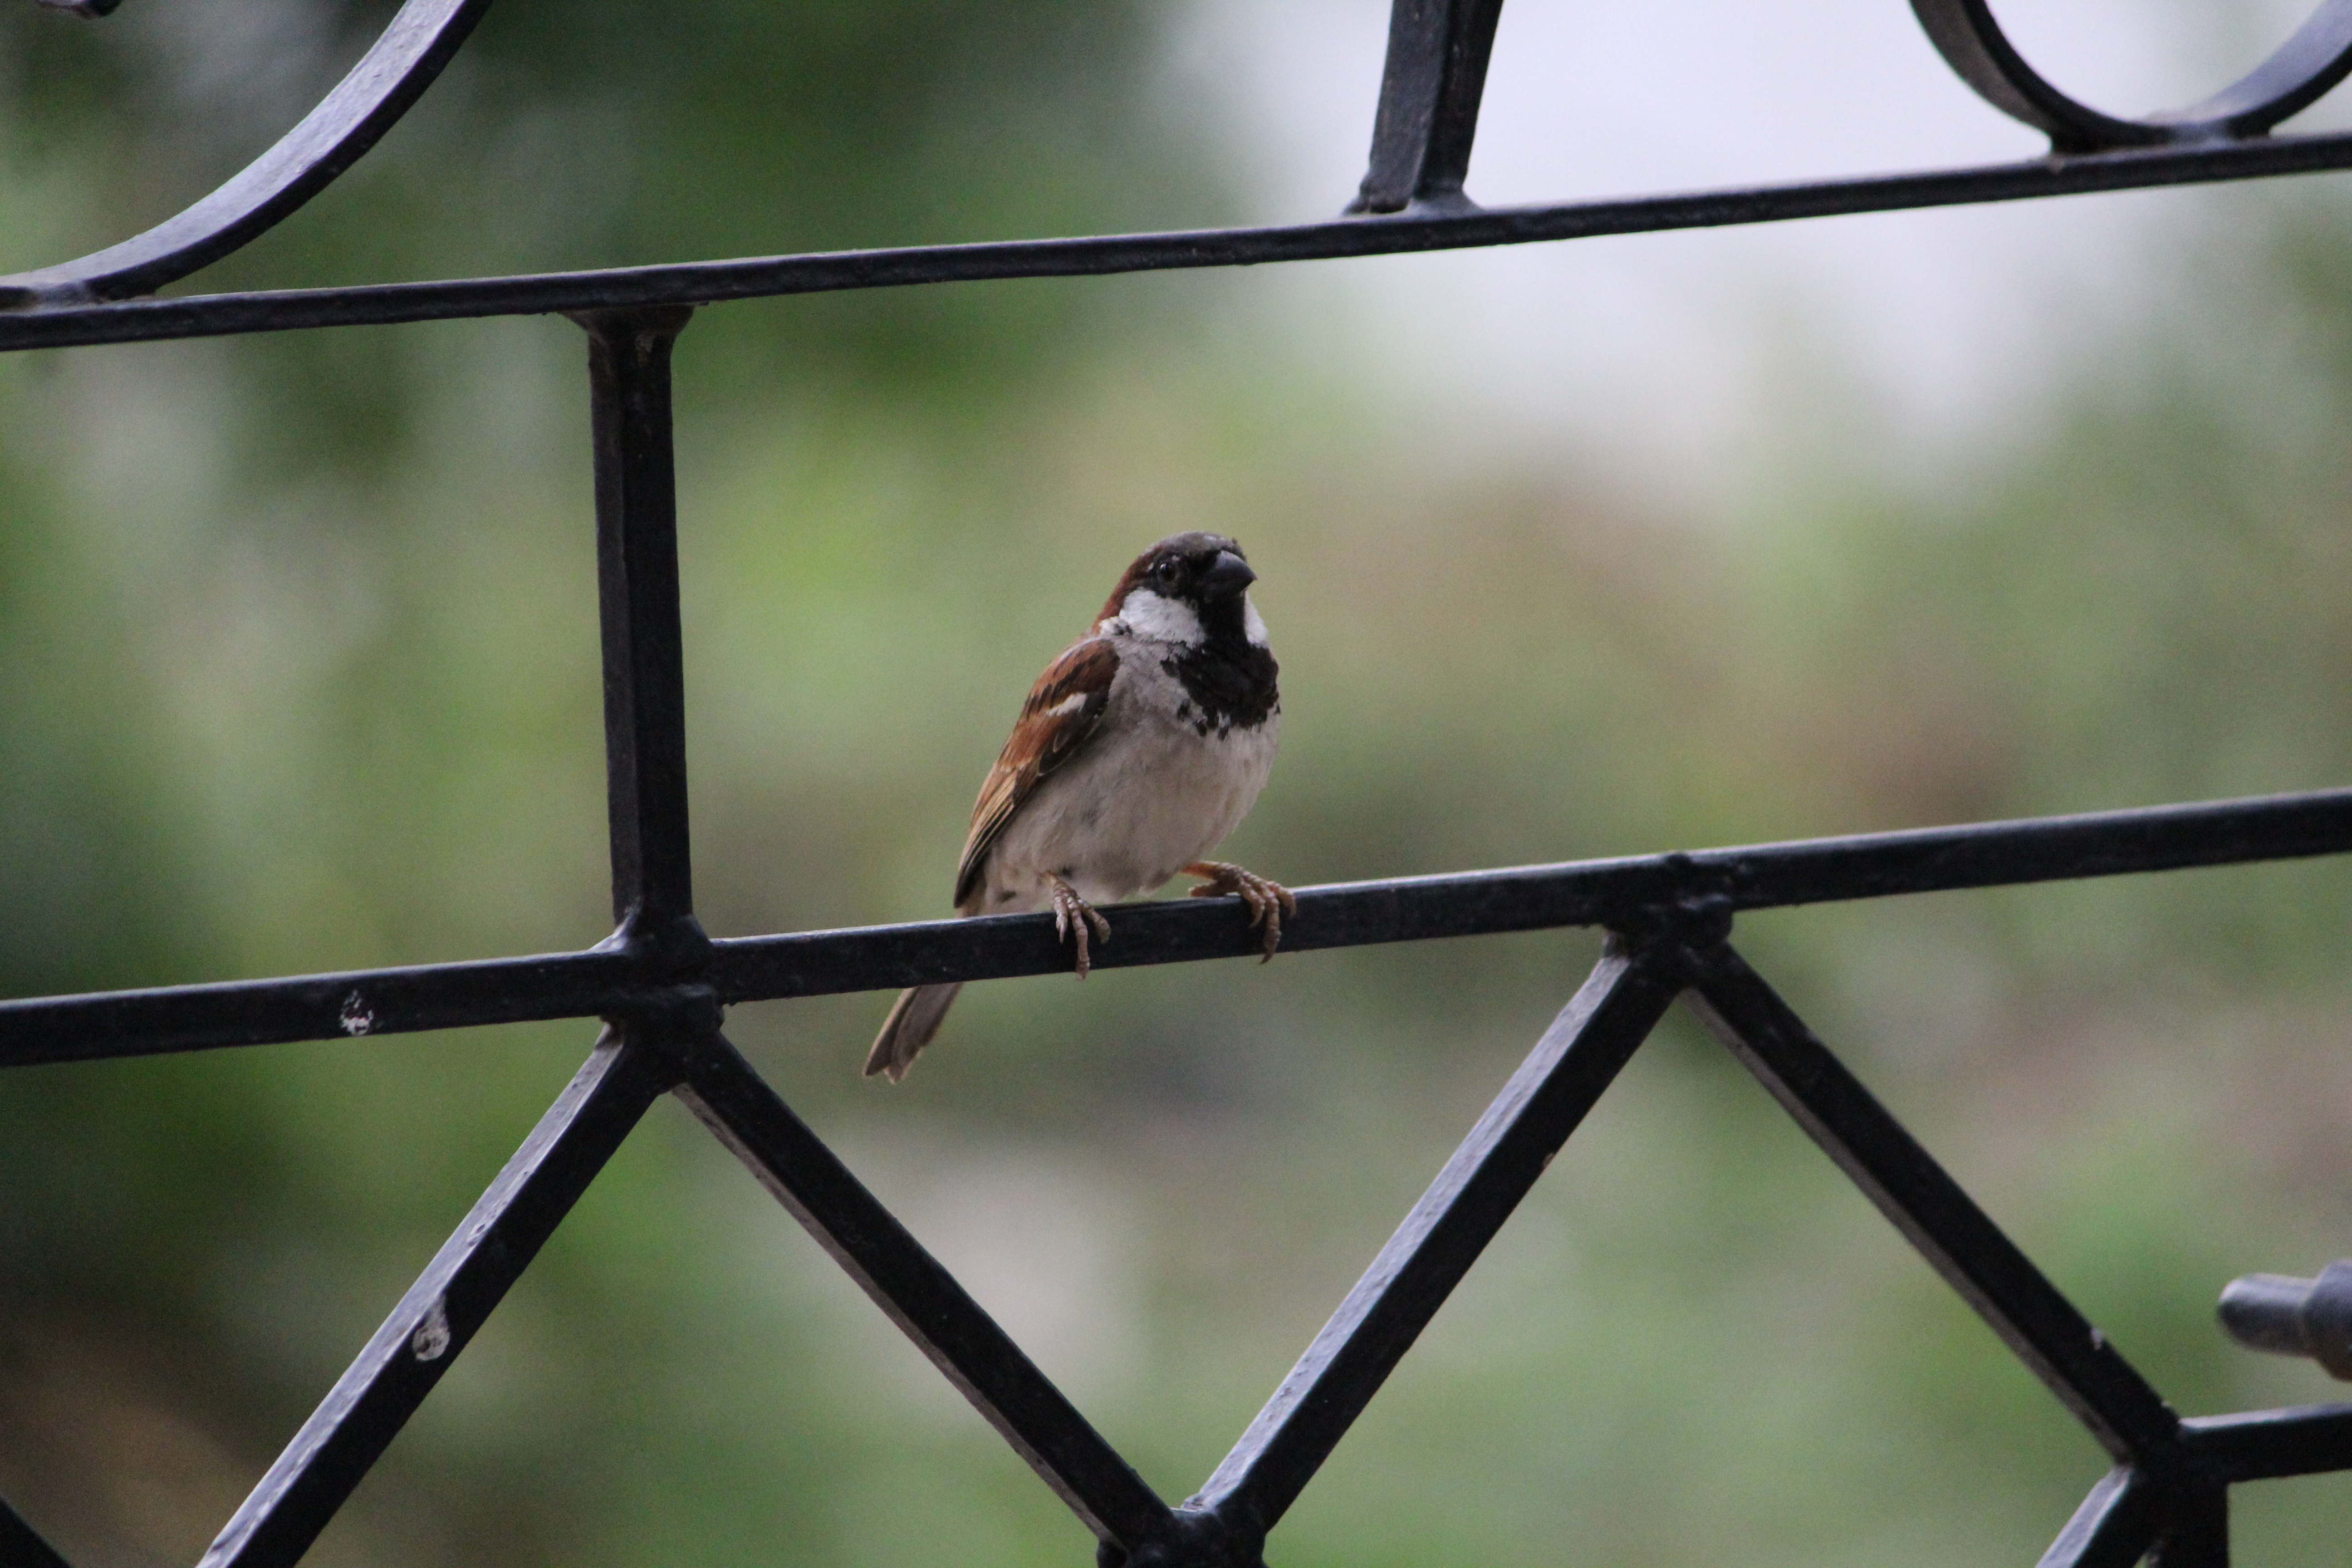 sell sparrow photographs clicked by me